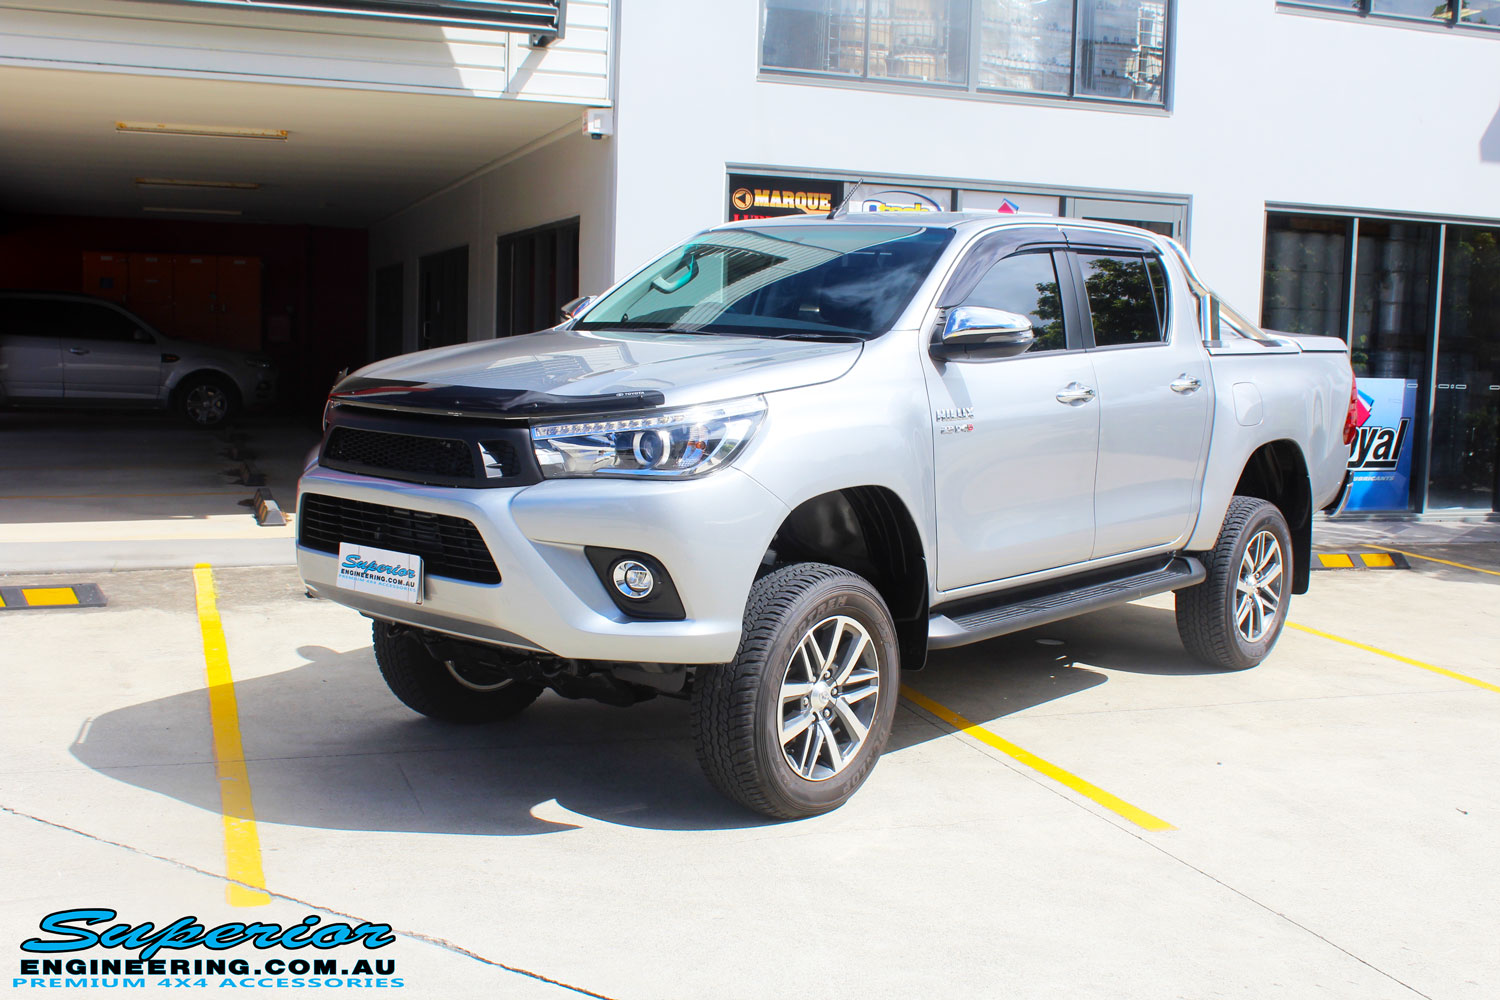 "Left front side view of a Toyota Revo Hilux Dual Cab in Silver after fitment of a 3"" Inch Lift Kit with King Coil Springs, Superior Billet Alloy Upper Control Arms and Body Lift Kit"